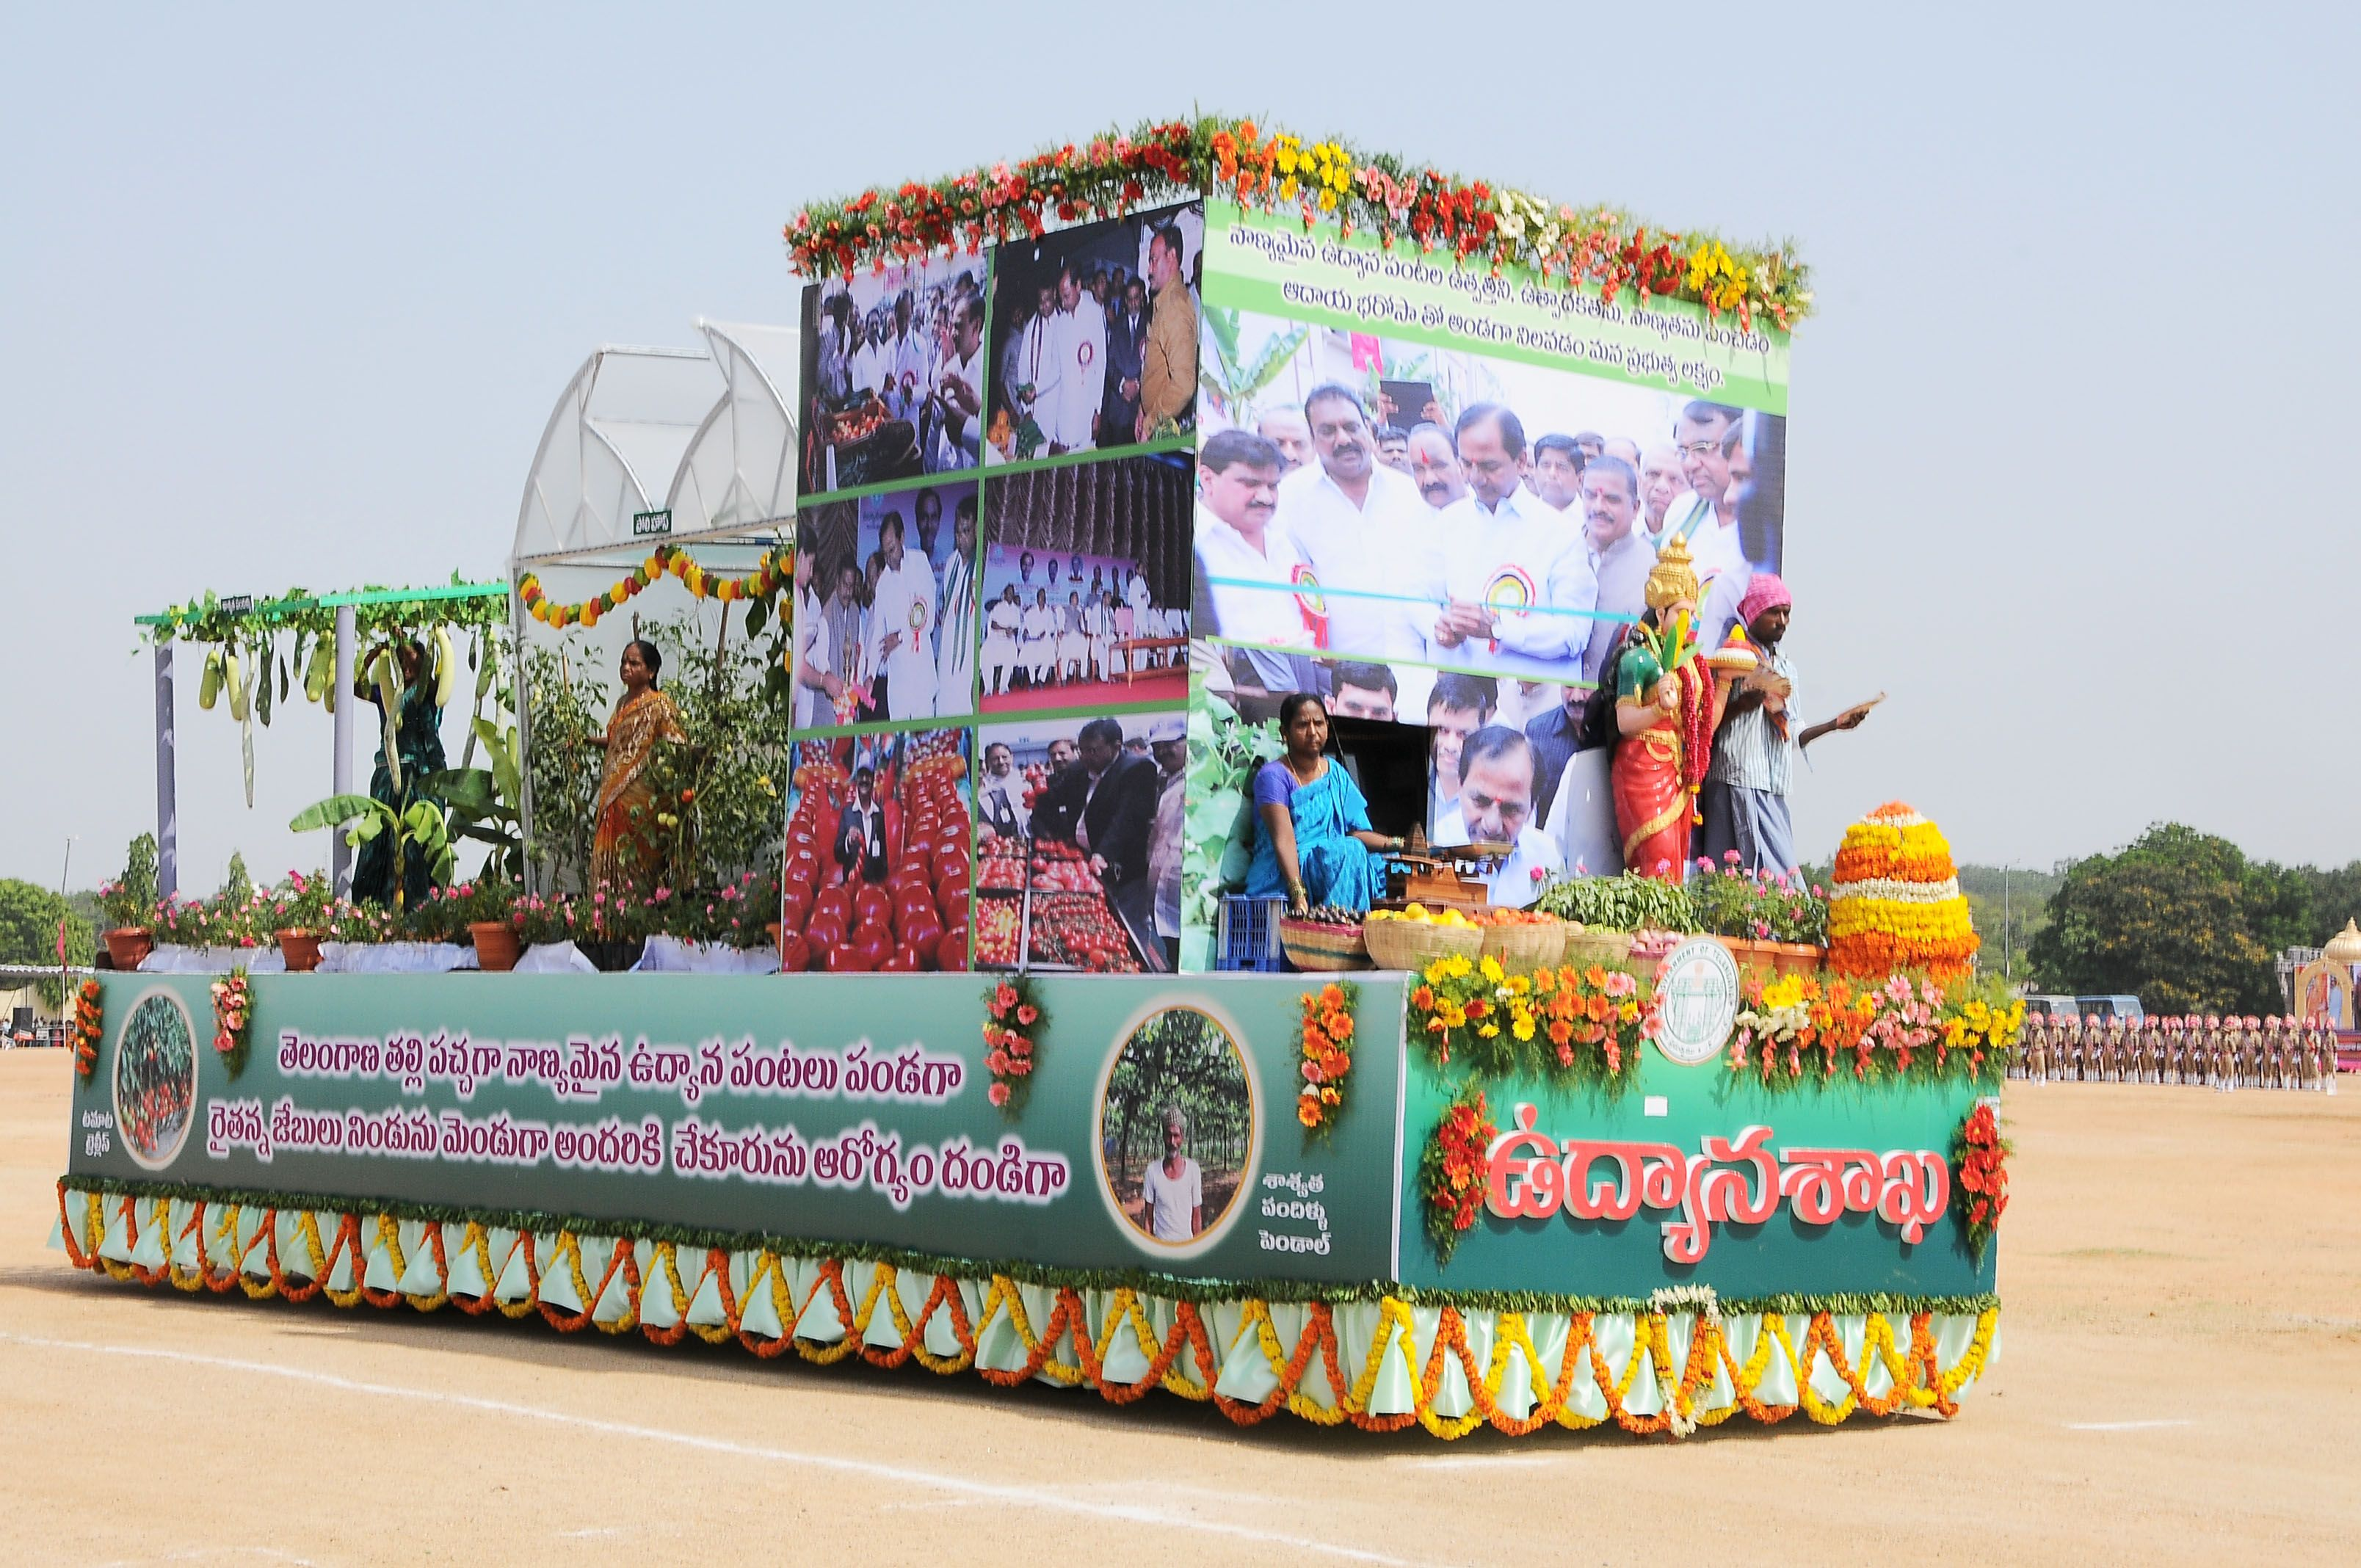 Telangana Chief Minister K.Chandrashekhar Rao participated in Telangana State Formation Day Celebrations on 2.6.2015.